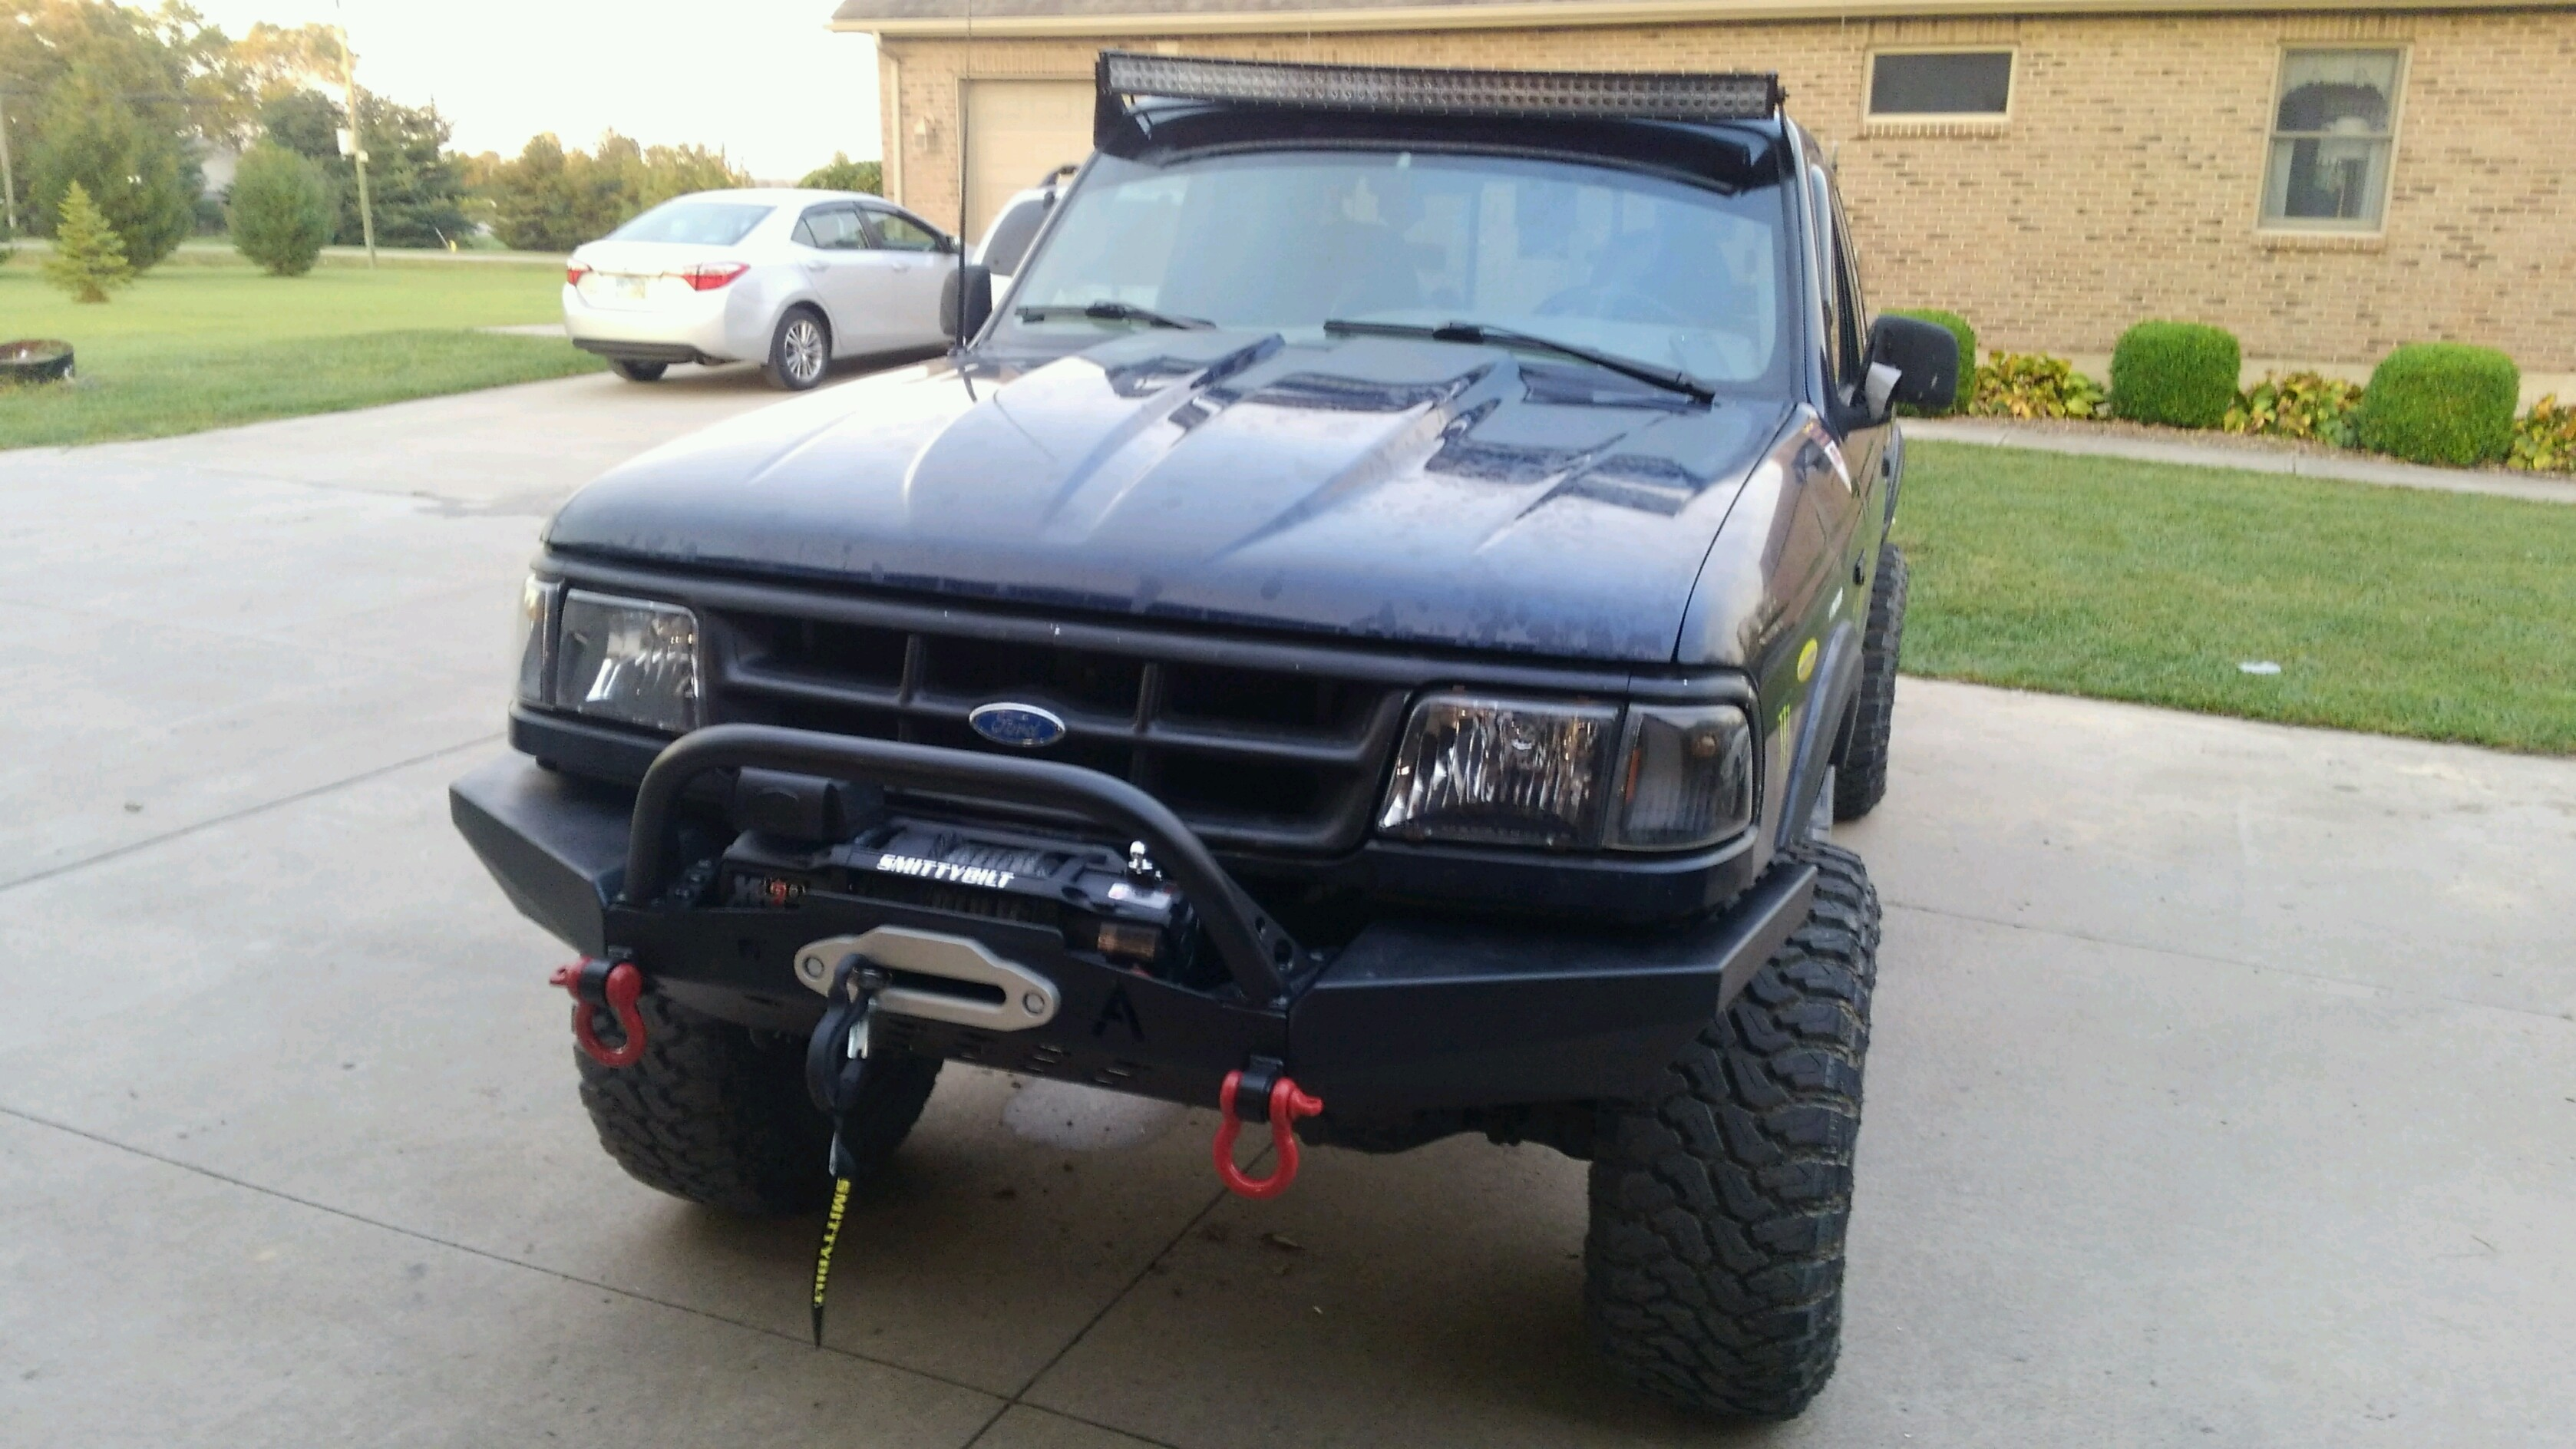 Jeep Grand Cherokee Off Road Bumper >> Elite Ford Ranger Modular Plain Front Winch Bumper 1993-1997 - Affordable Offroad